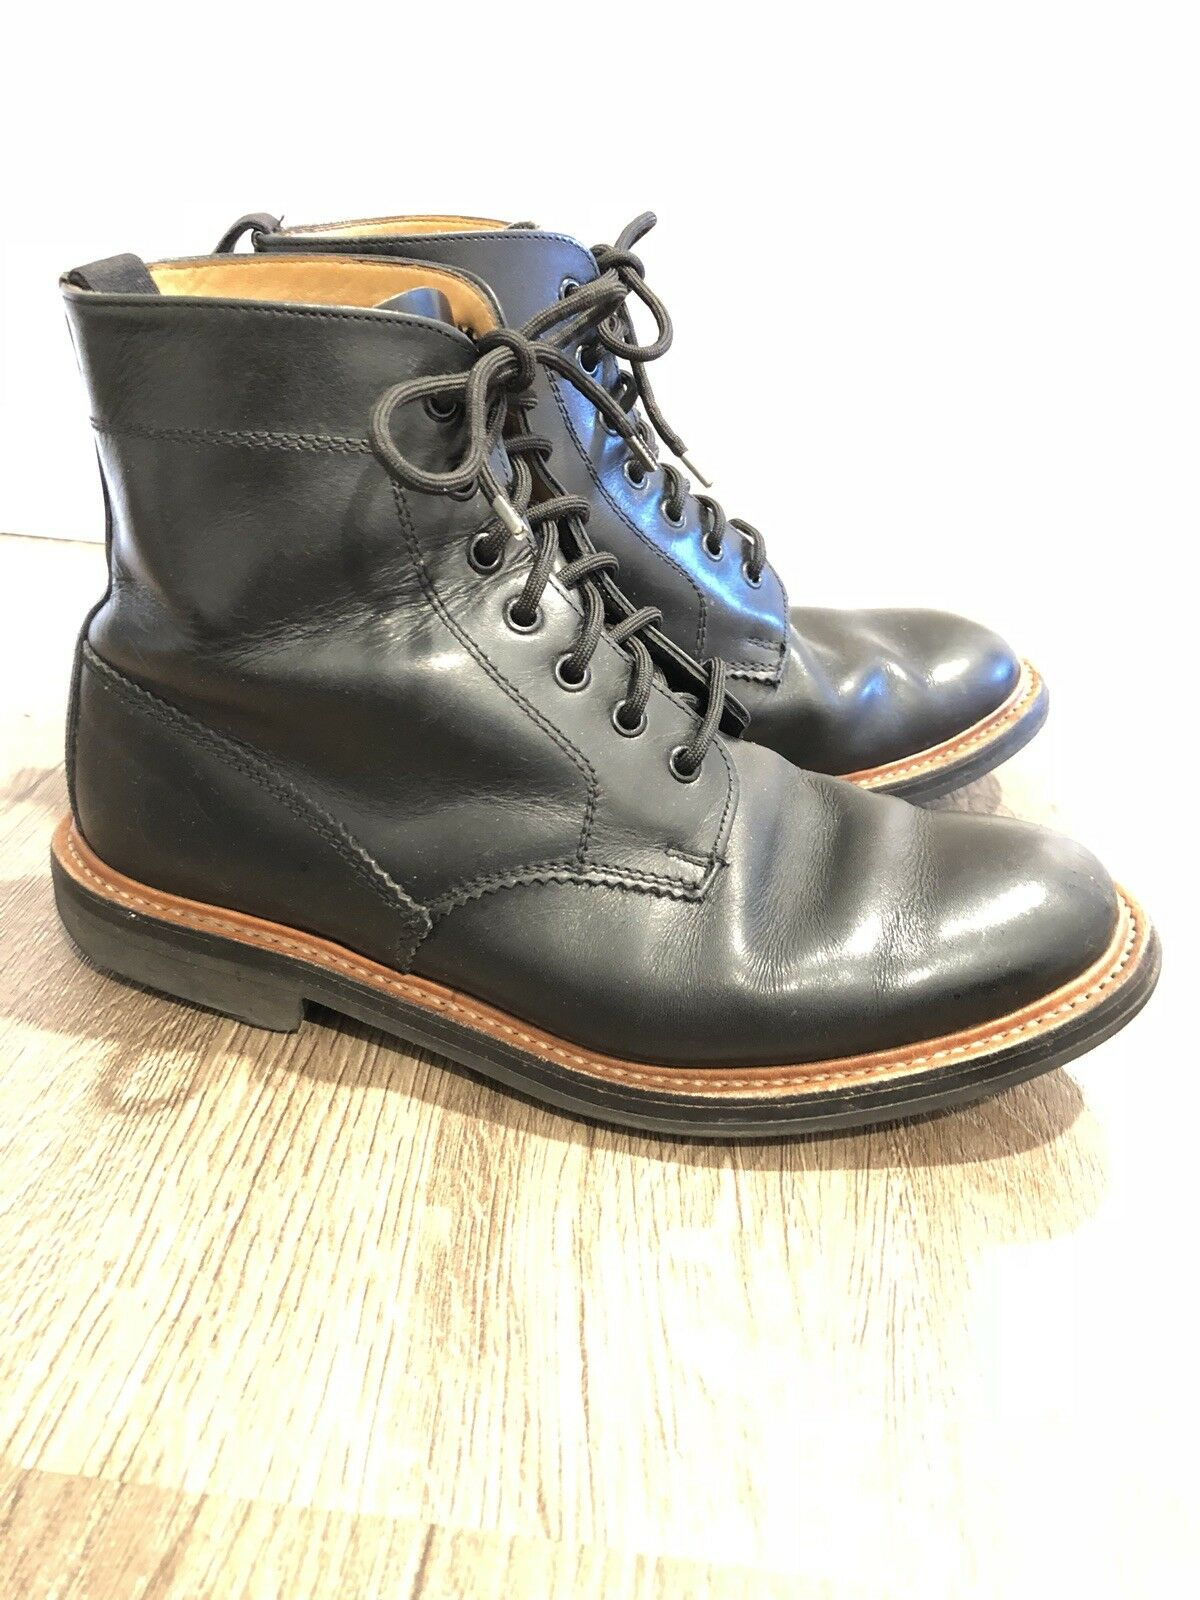 MARK MCNAIRY MEN'S  LEATHER BOOTS MADE IN ENGLAND  SIZE 9us